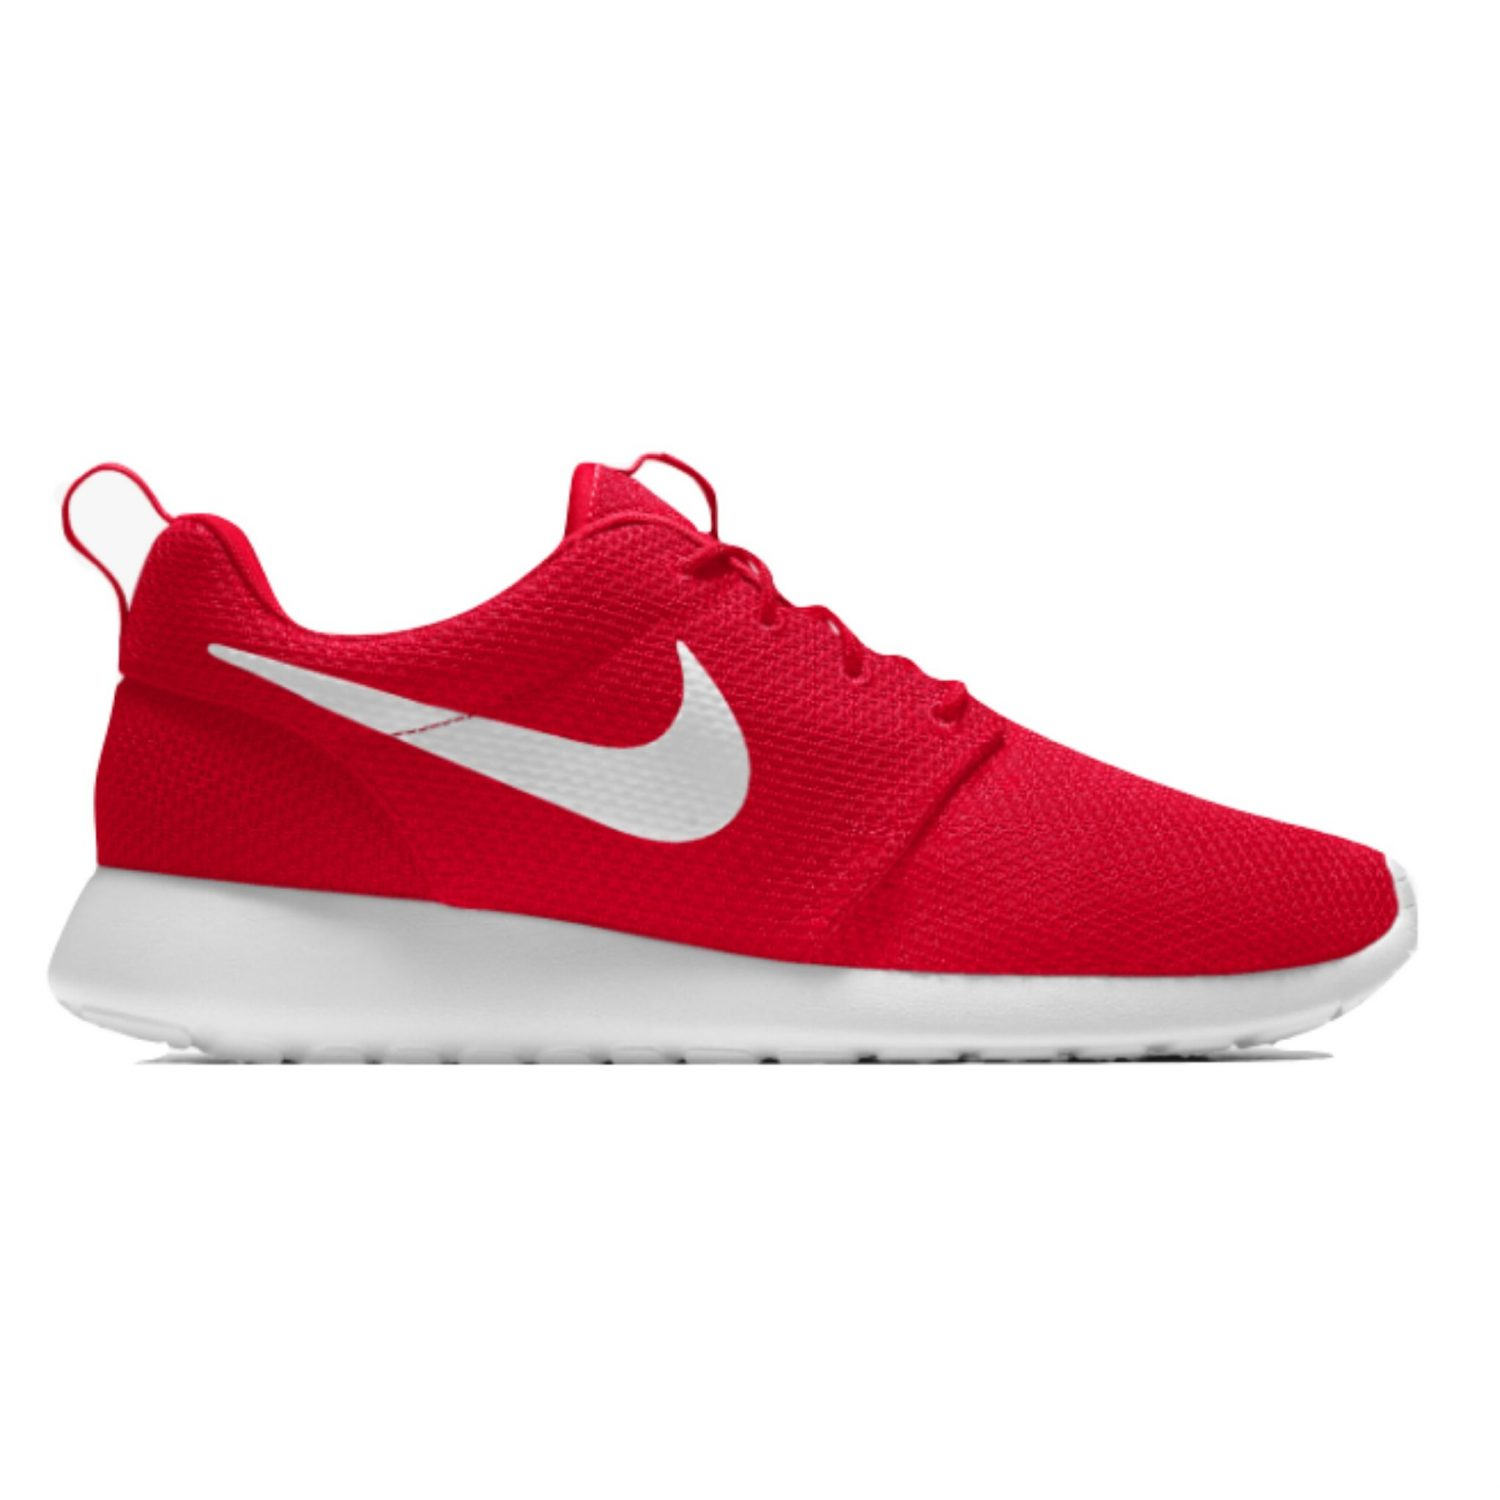 the best attitude 2efb4 2d886 Nike Roshe One Red